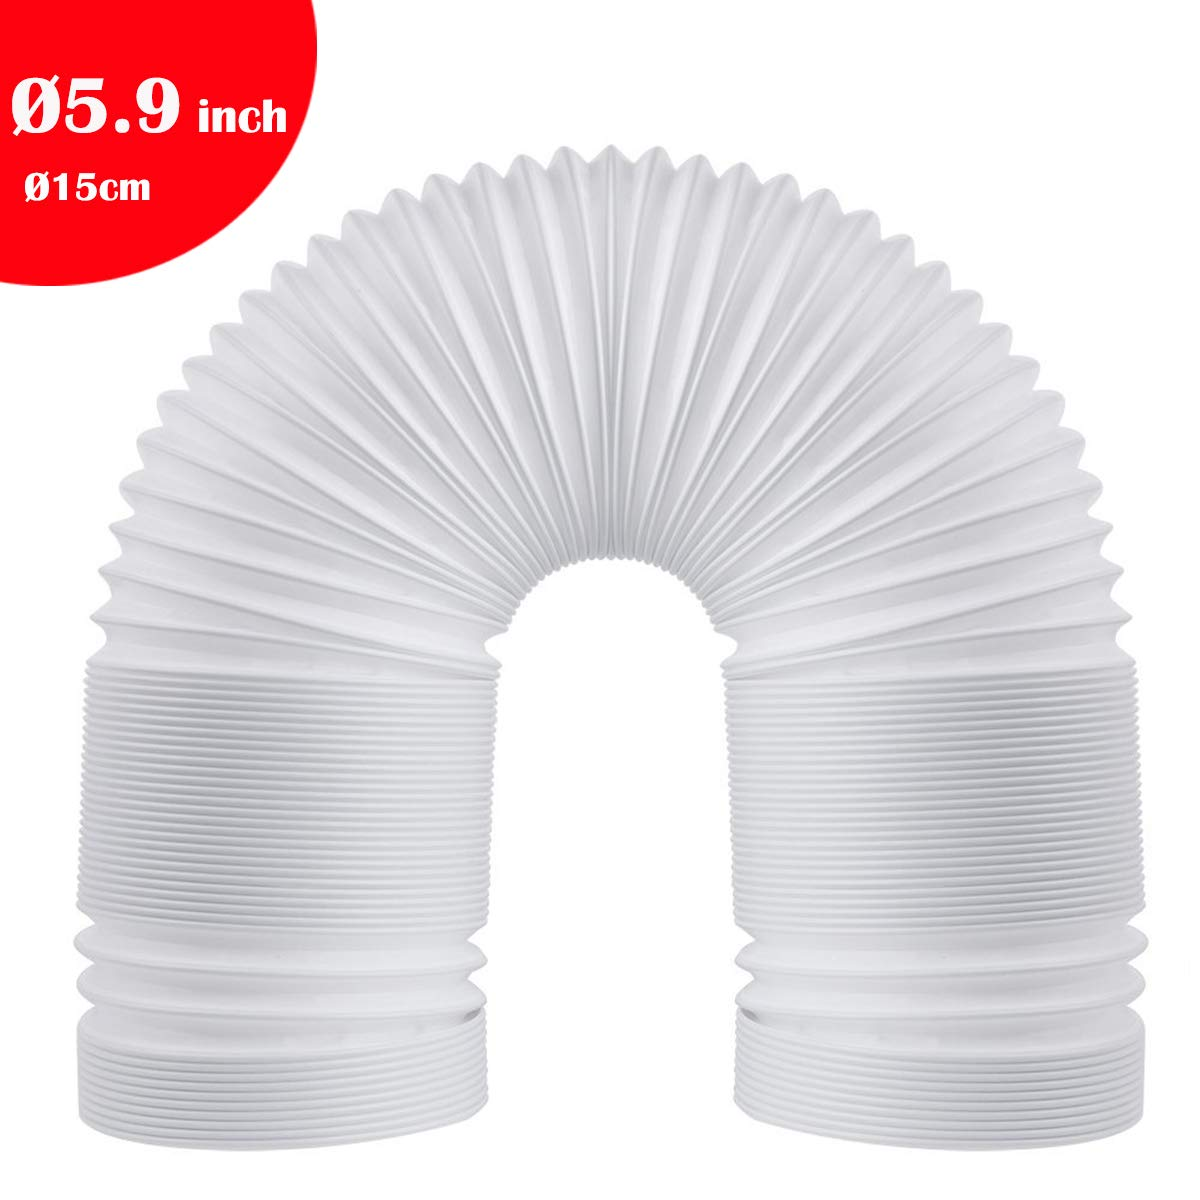 Welsoon 5.9 inch Diameter Extra Long Portable Air Conditioner Exhaust Hose 79 inch Length Counterclockwise Vent Hose (5.9inch Diameter/15CM)